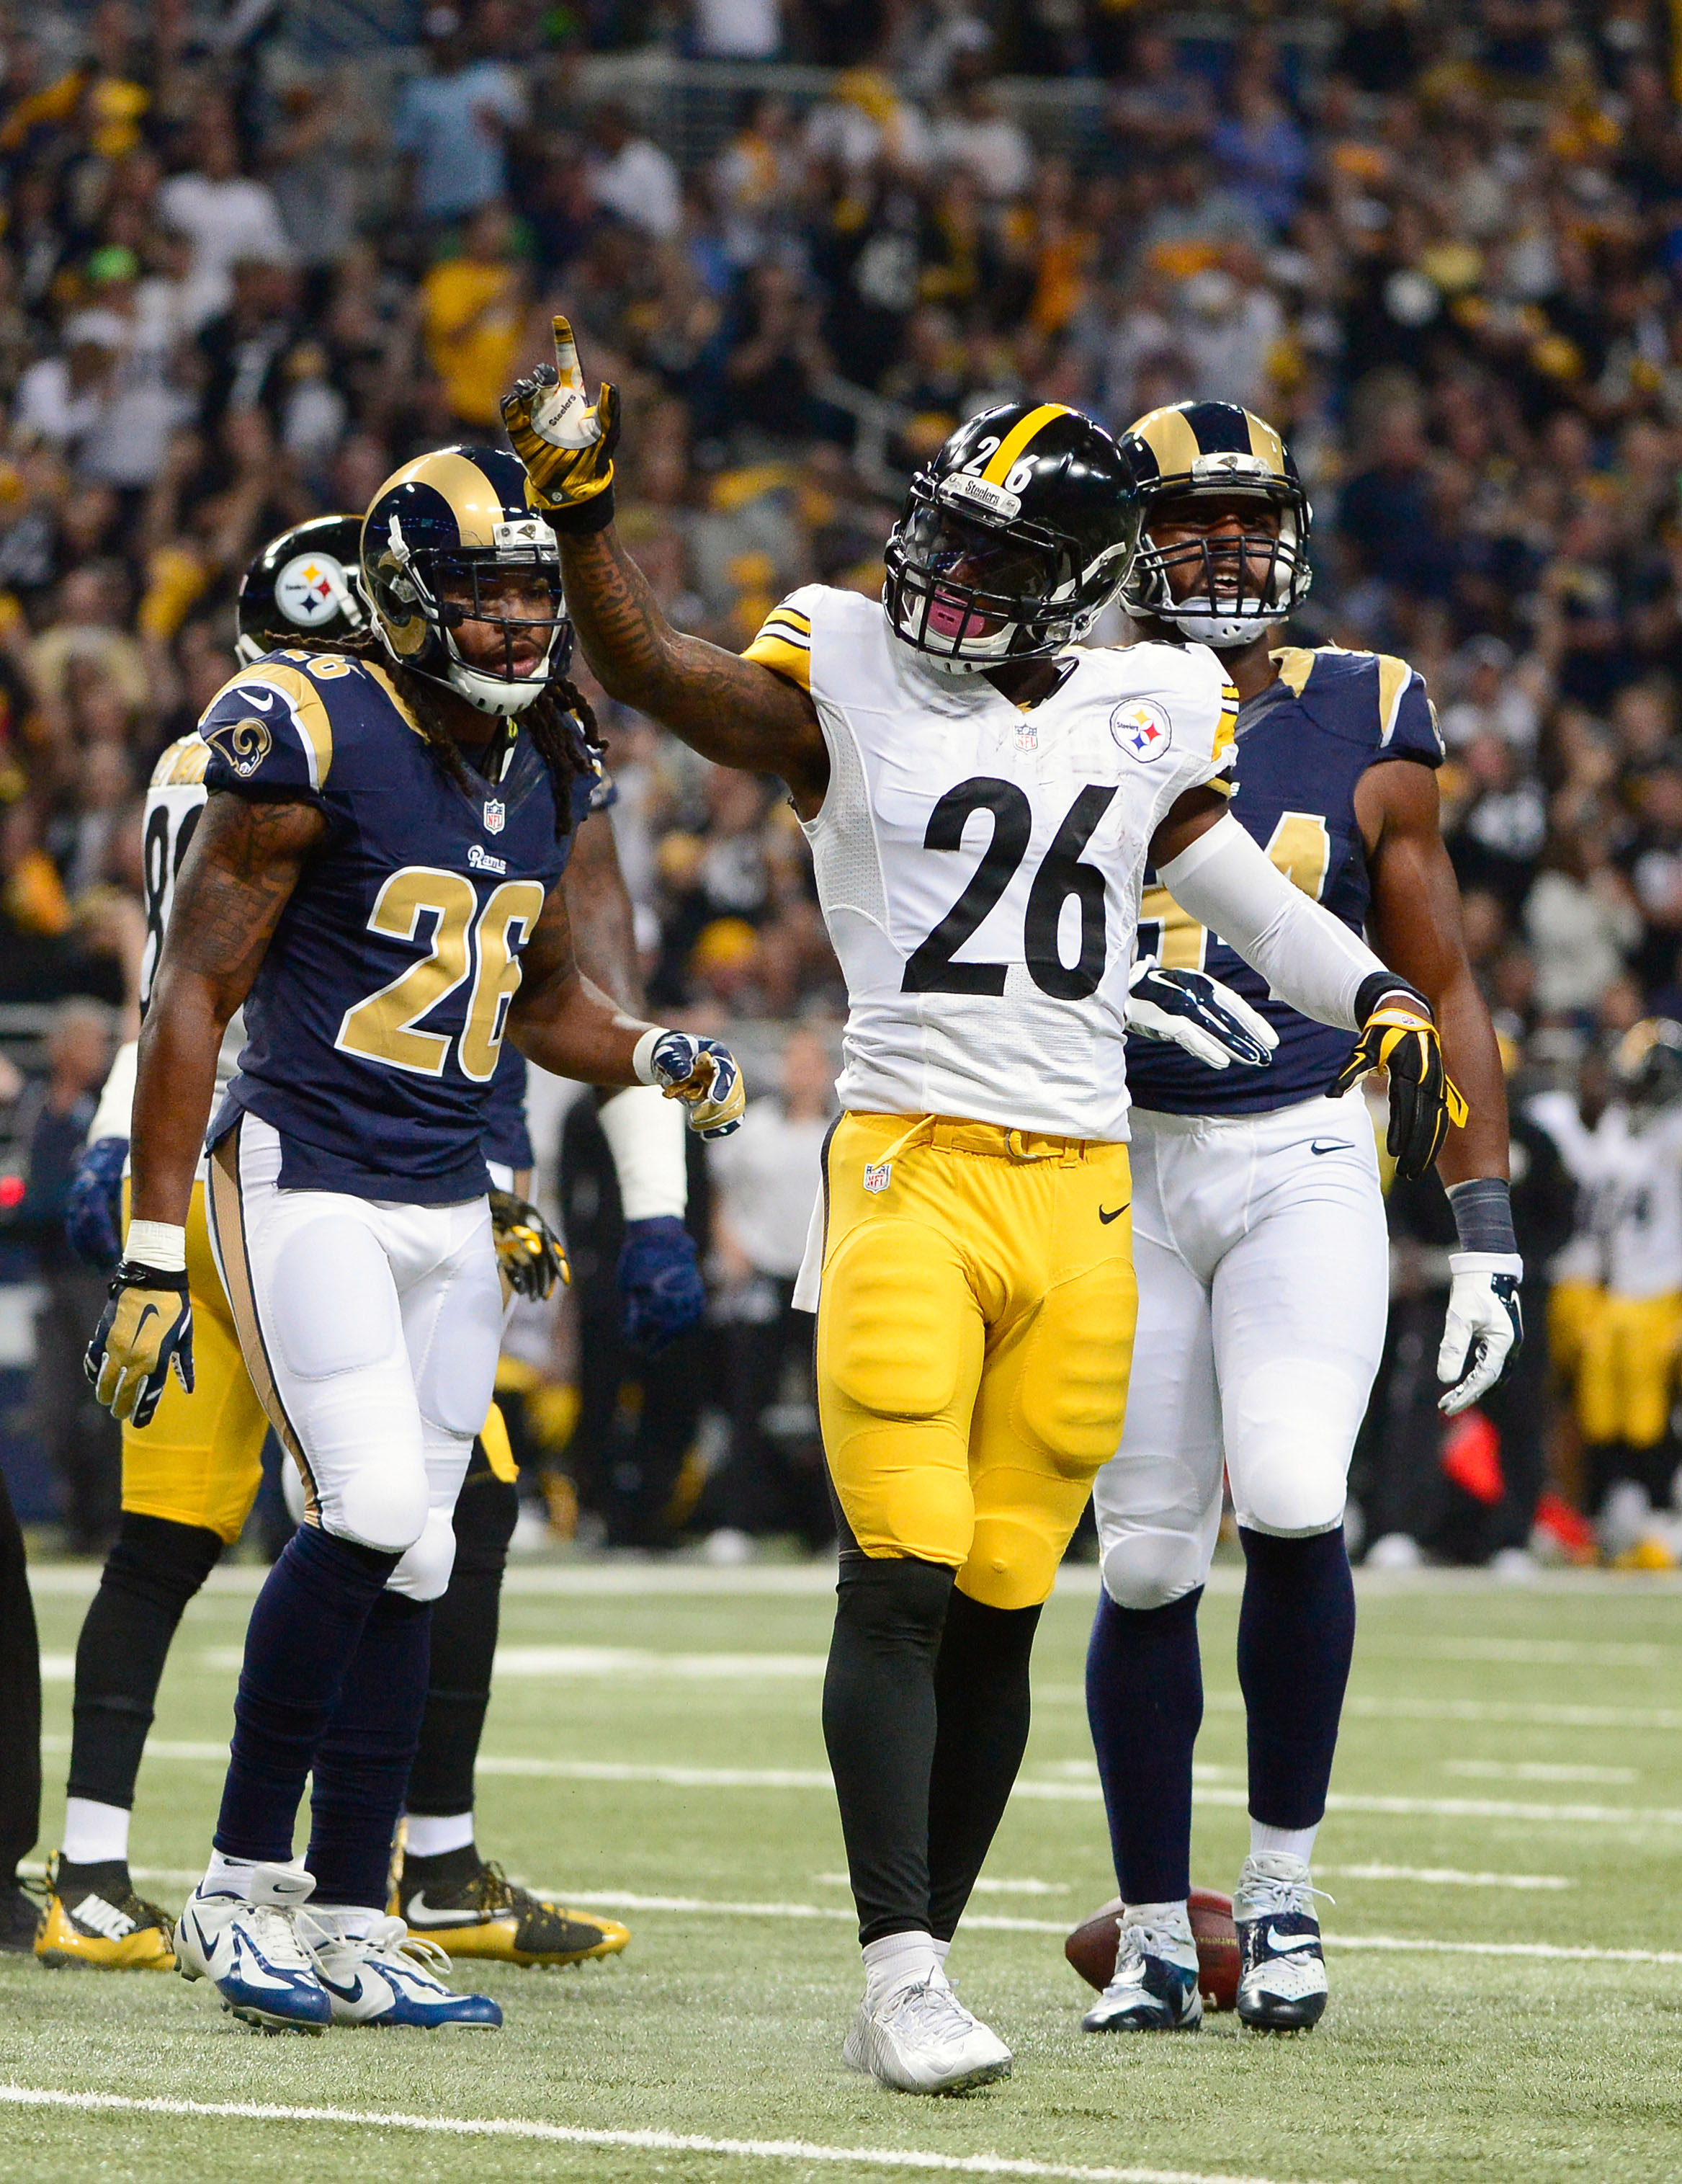 NFL: Pittsburgh Steelers at St. Louis Rams